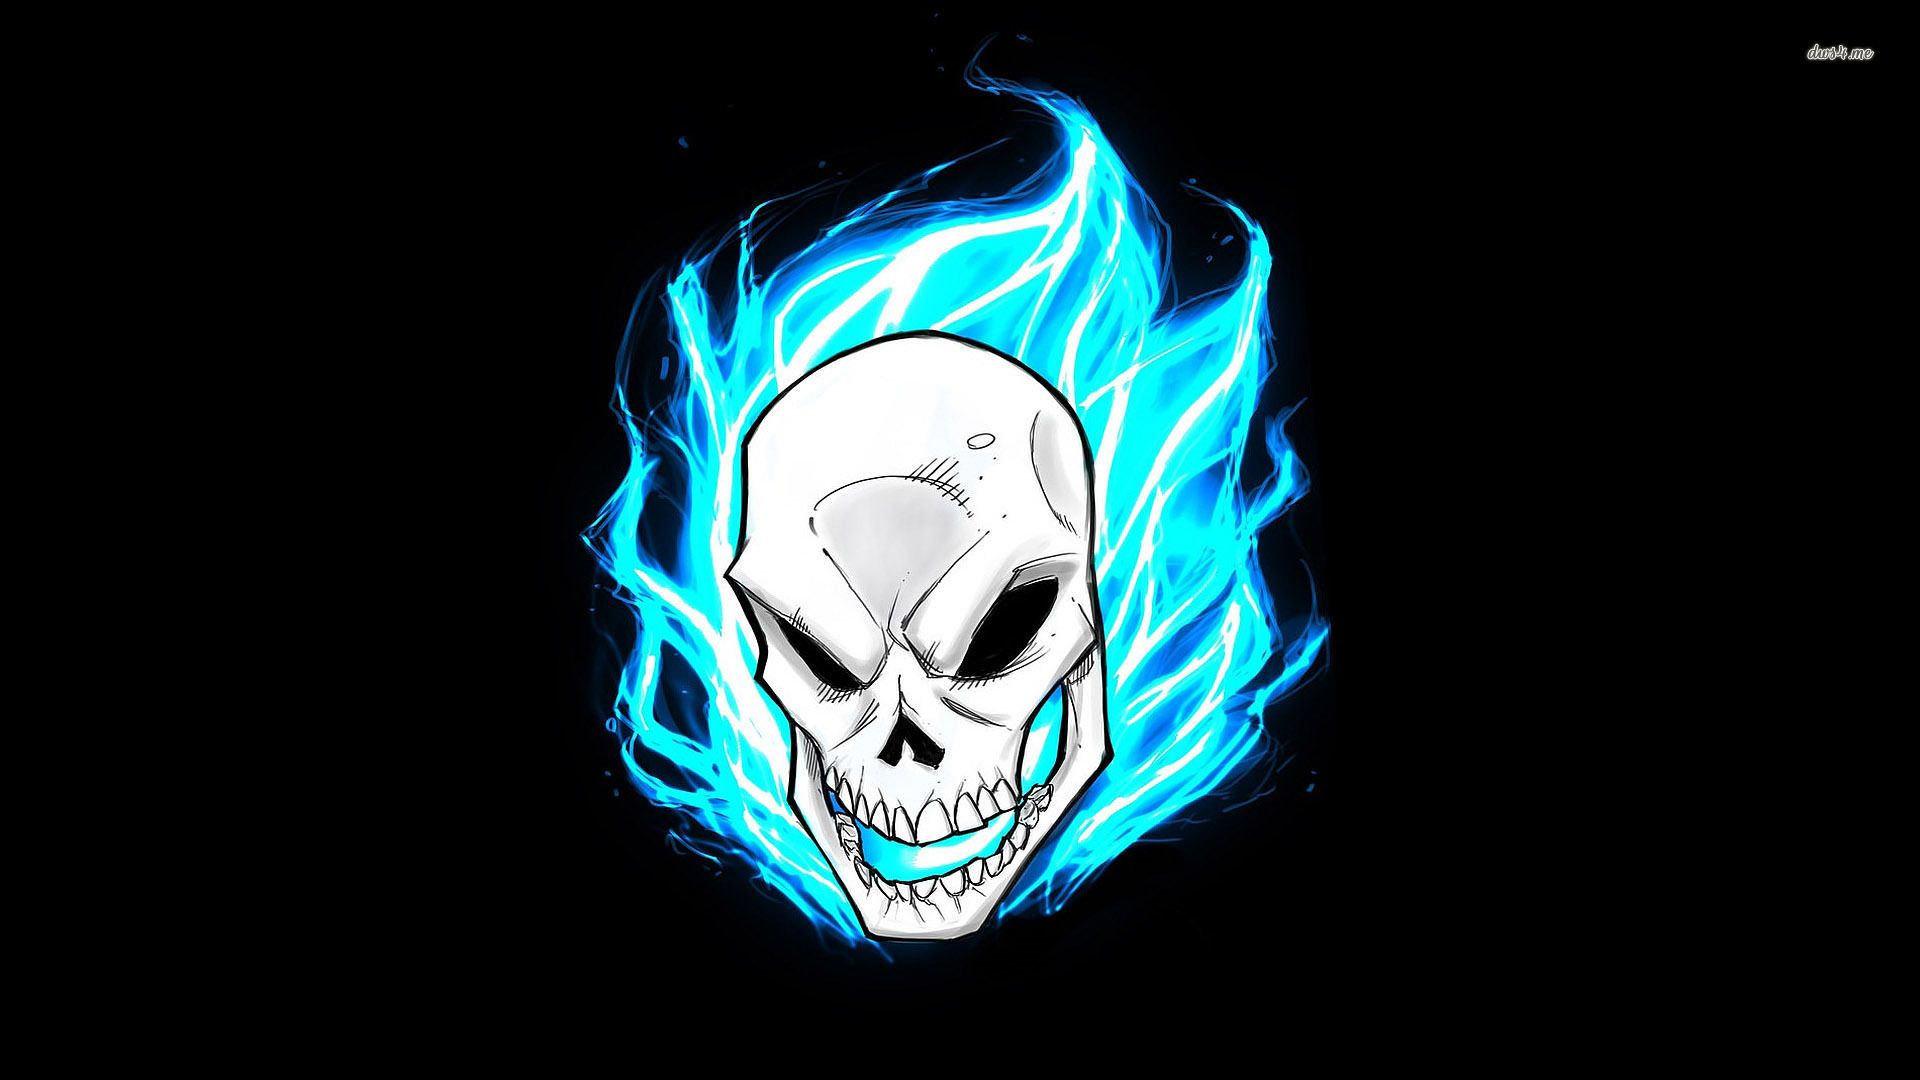 1920x1080 Blue flames surrounding the Ghost Rider wallpaper - Comic ...